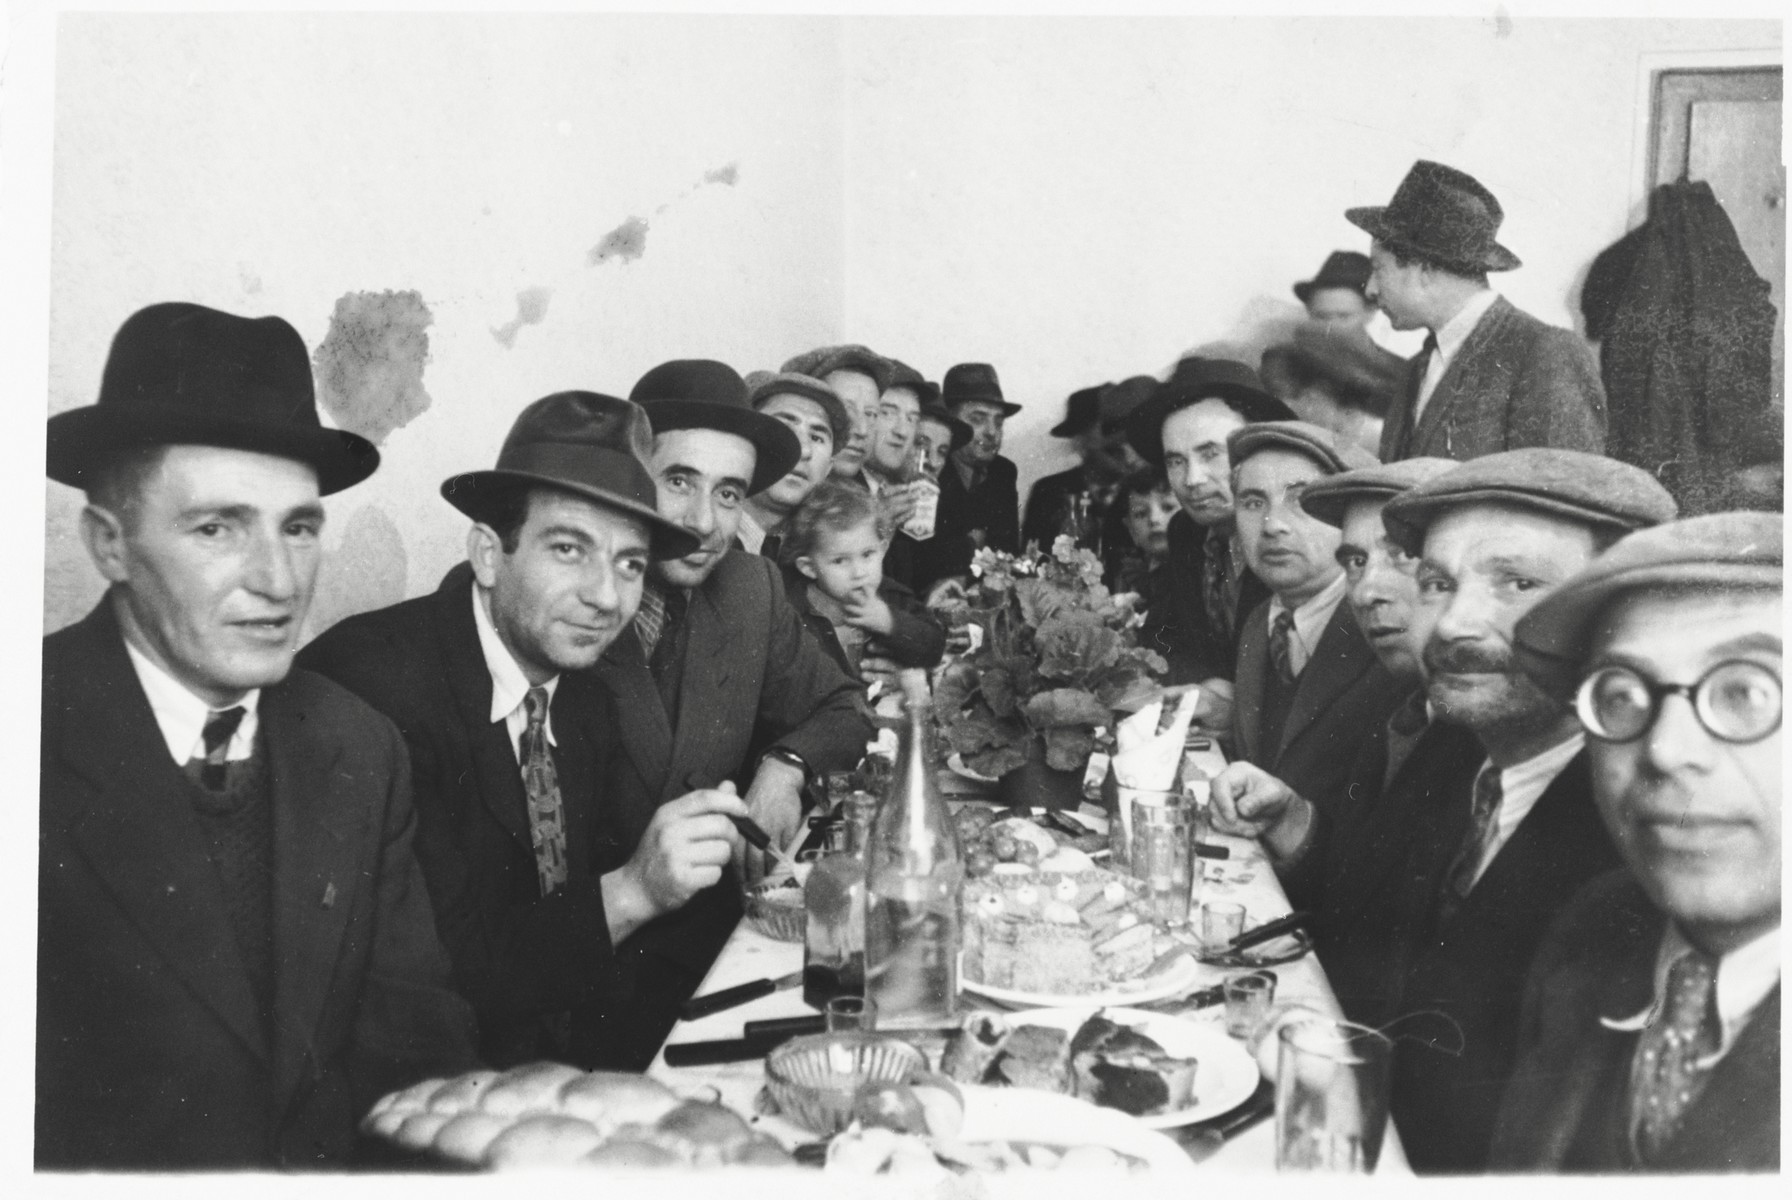 Jewish DPs are gathered around a table at a festive meal following the circumcision of Arele Werkel, the son of Taibel and Yehiel Greenberg at the Ebelsberg displaced persons camp near Linz, Austria.  Among those pictured are Itzhak Gendelman (standing at the upper right).